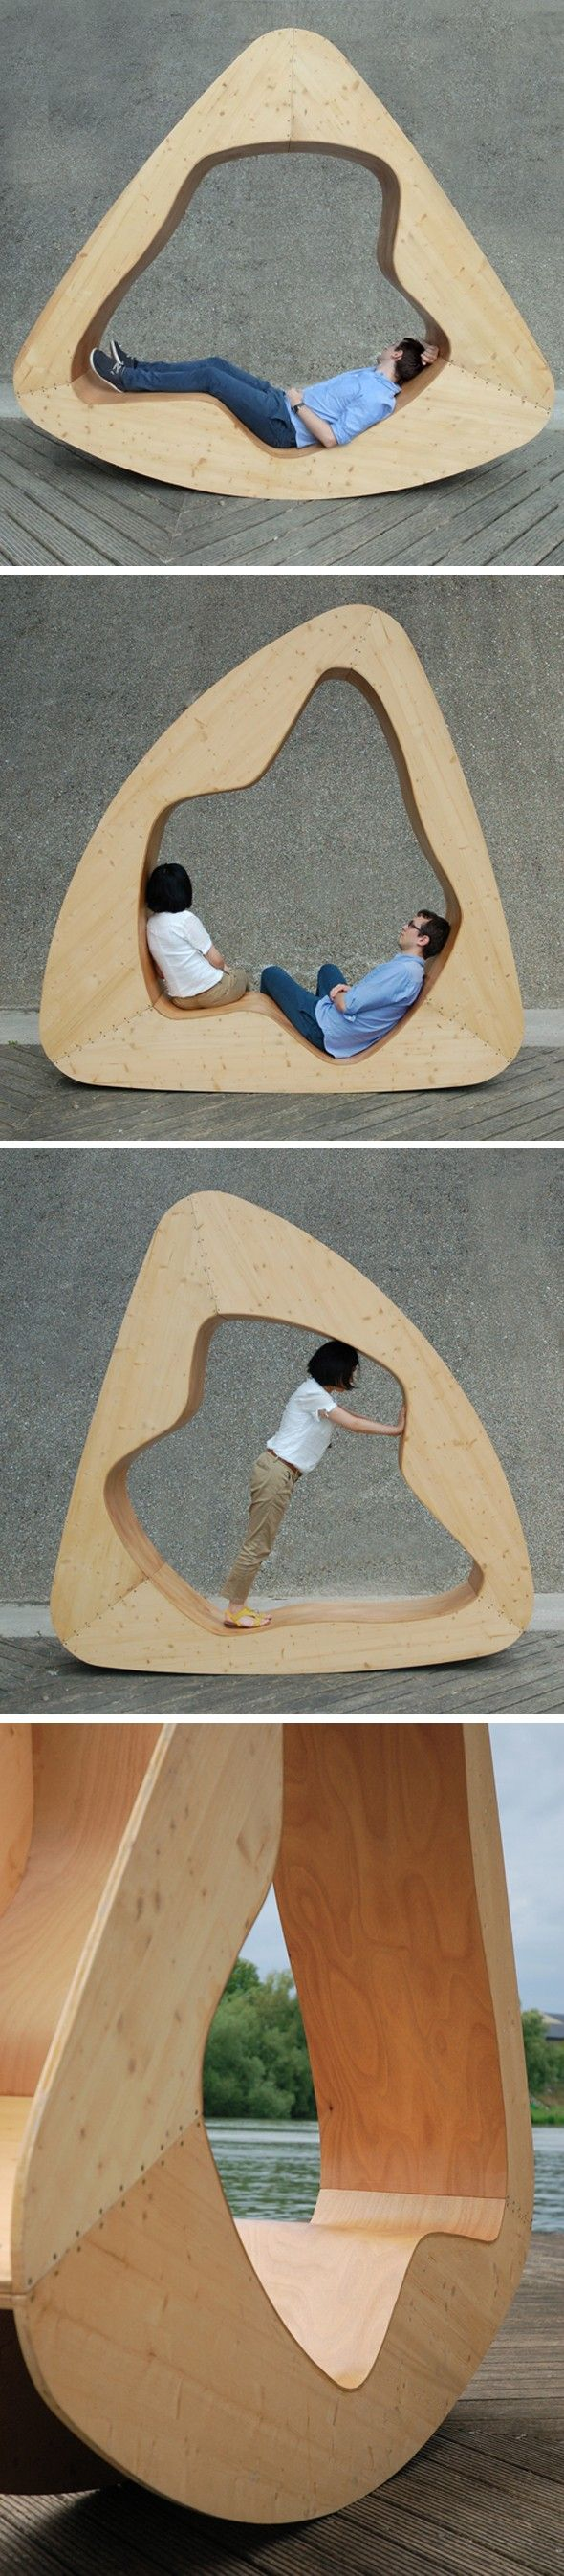 Curved comfort- limiting in terms of variations and table space Yuan Yuan - La maison nuage